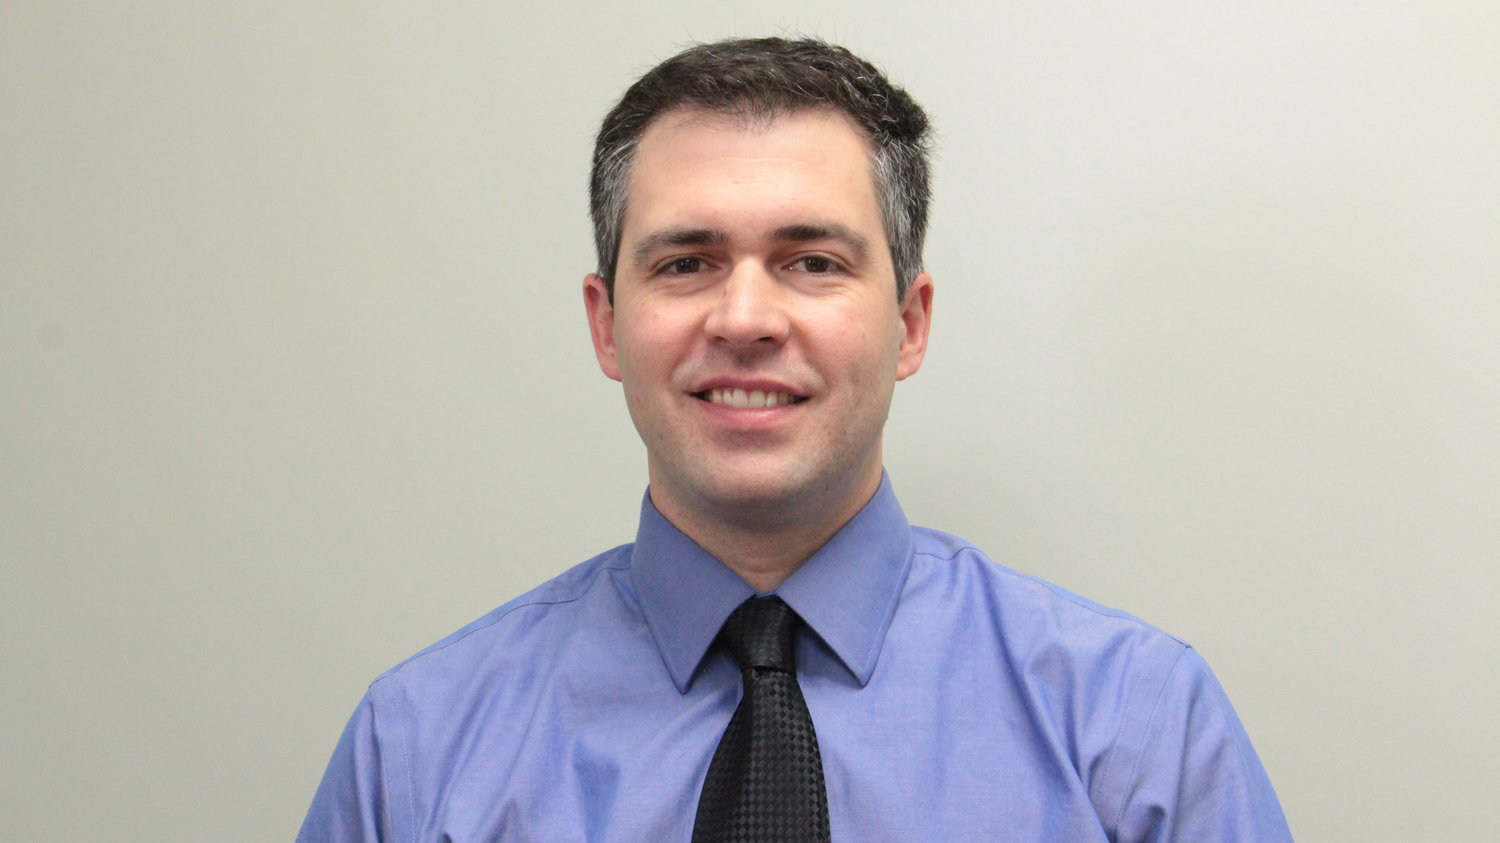 Dr. Sean Hattenbach has been in town a couple of months but is already treating the medical needs of area residents. You can find the family medicine physician at the Sievers Clinic.